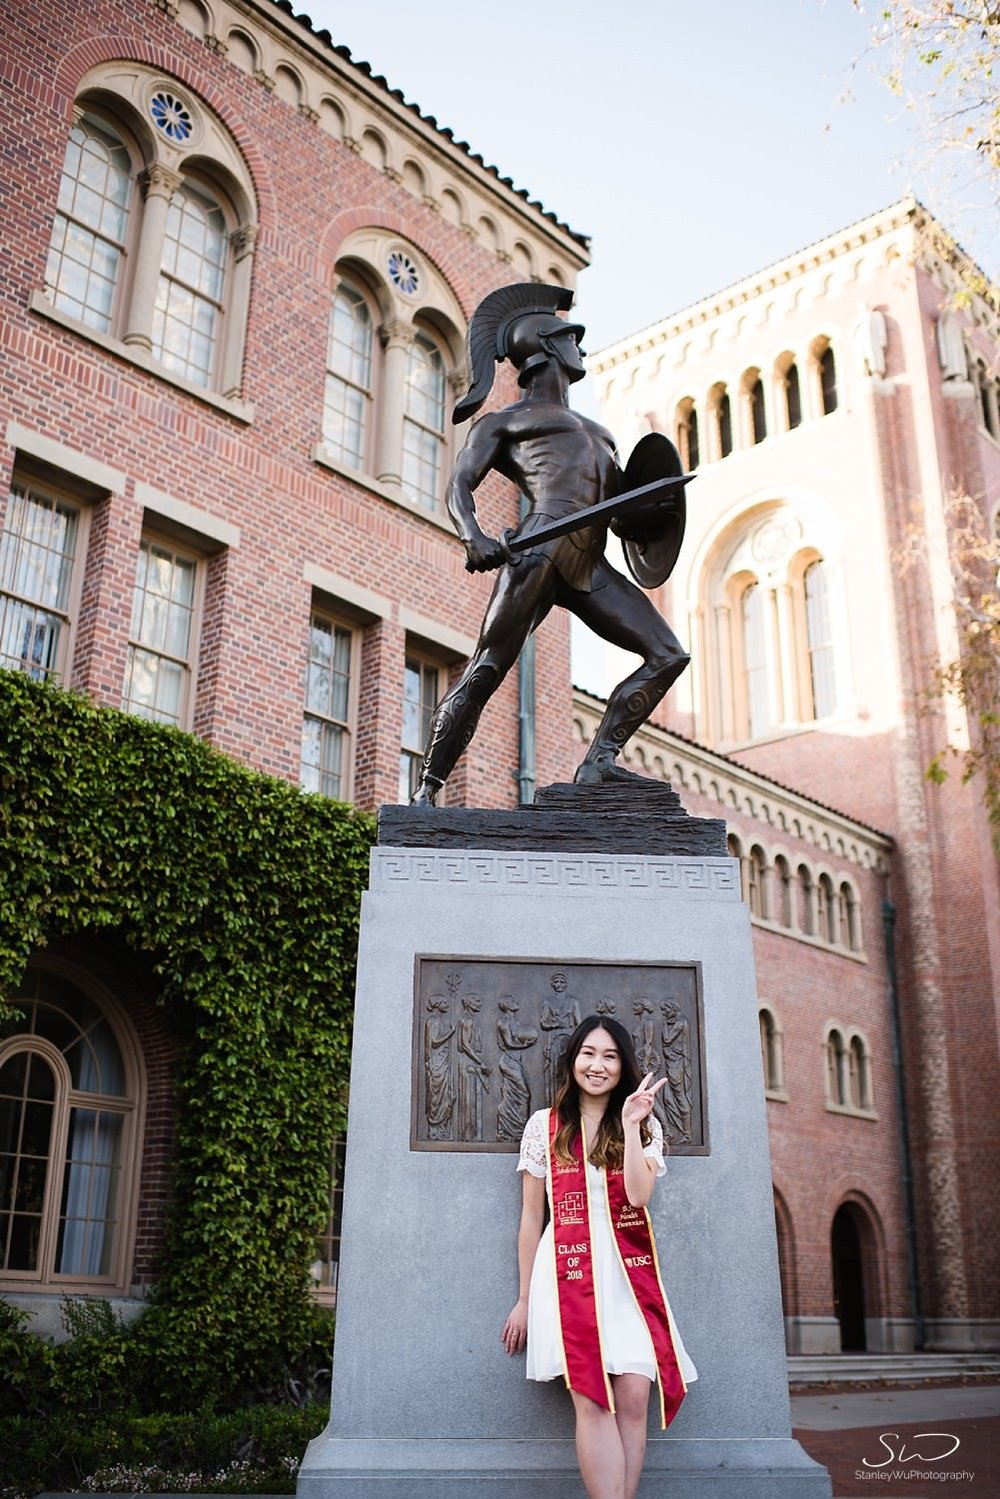 Tommy Trojan graduation photo at USC | Los Angeles Orange County Senior Portrait & Wedding Photographer